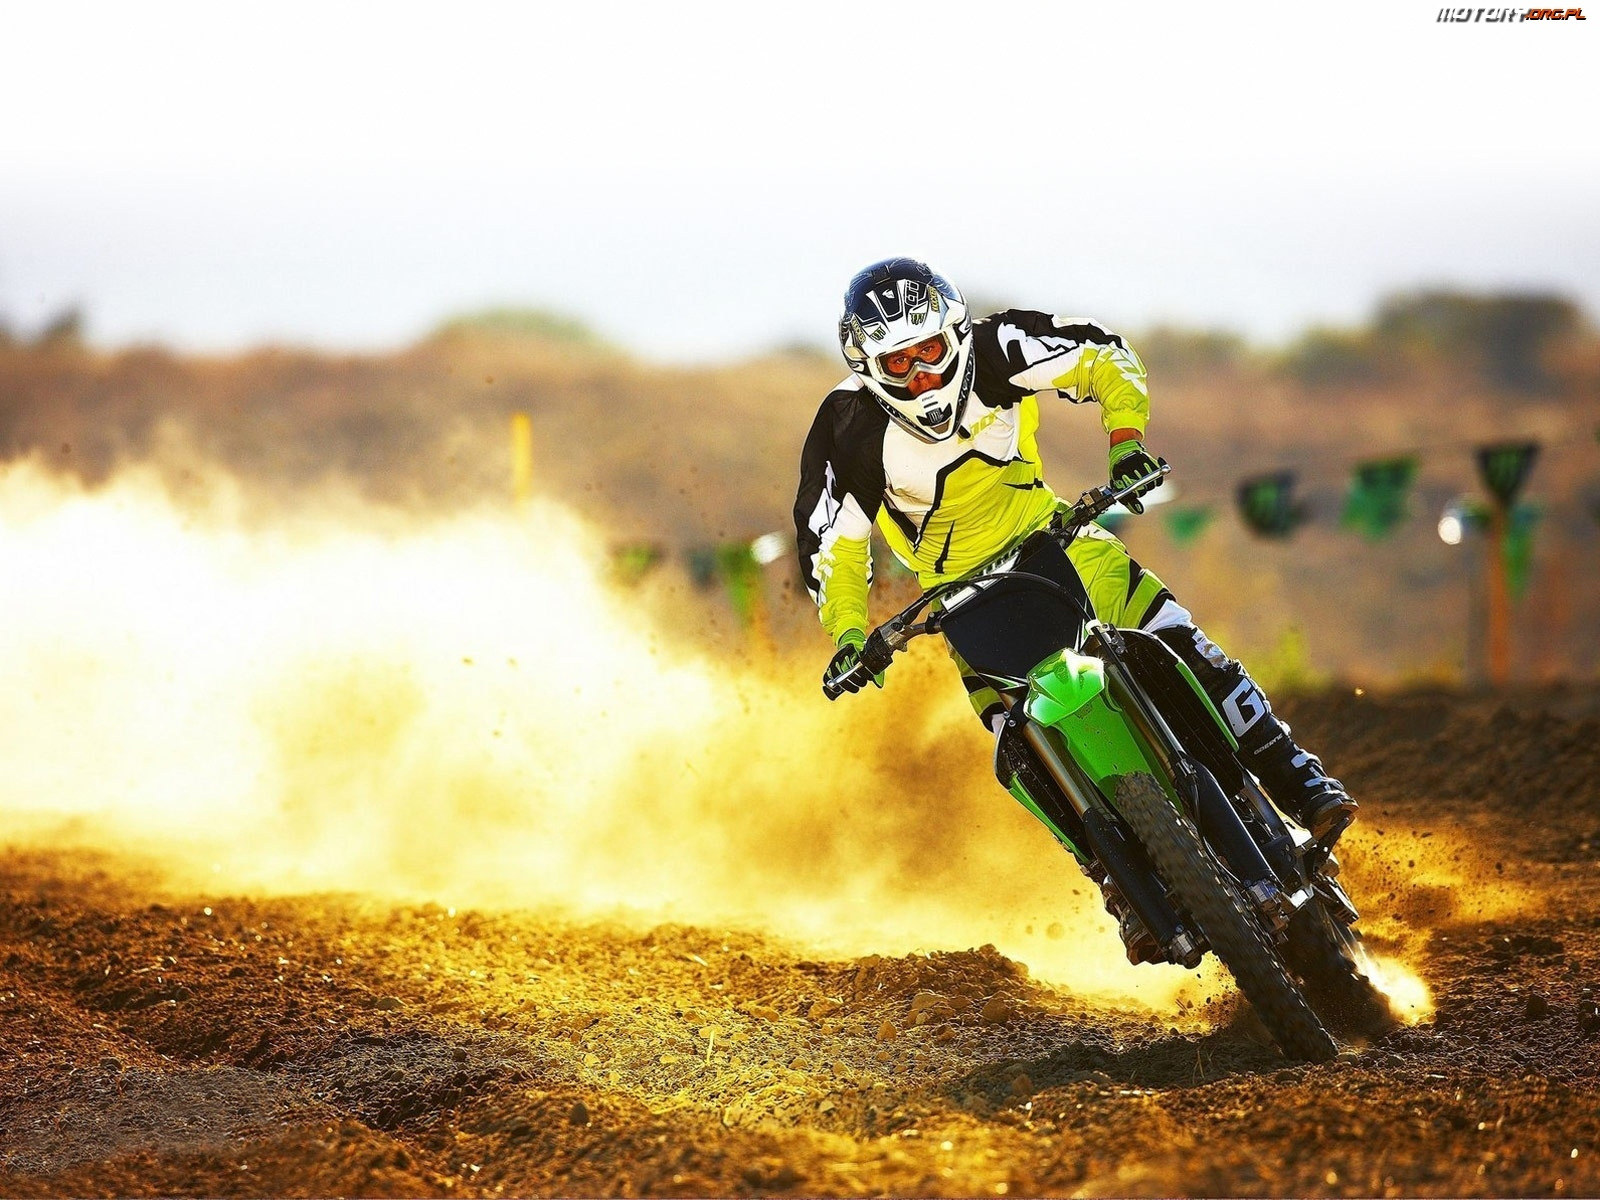 Kawasaki KX250F Monster Energy, Zawody